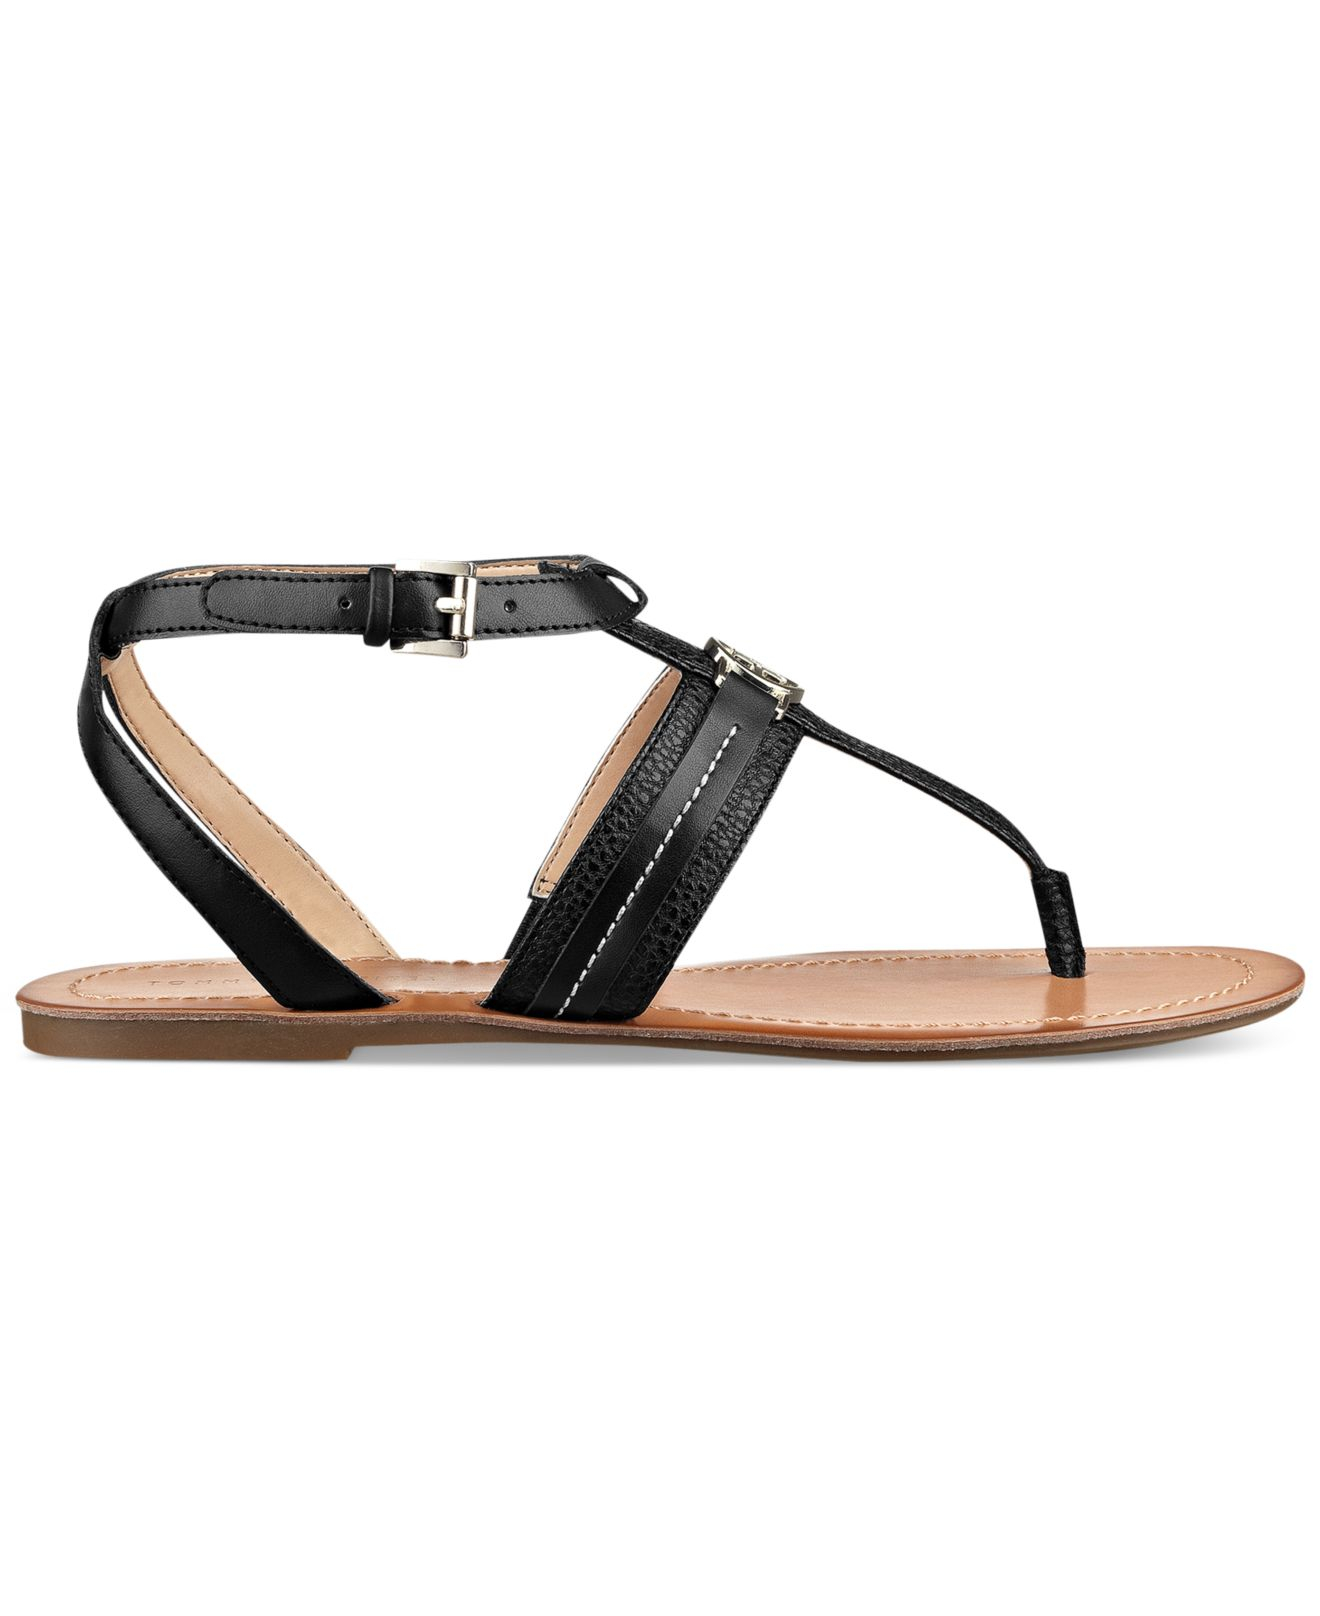 d4bdc6927 Tommy Hilfiger Women'S Lorine Flat Thong Sandals in Black - Lyst